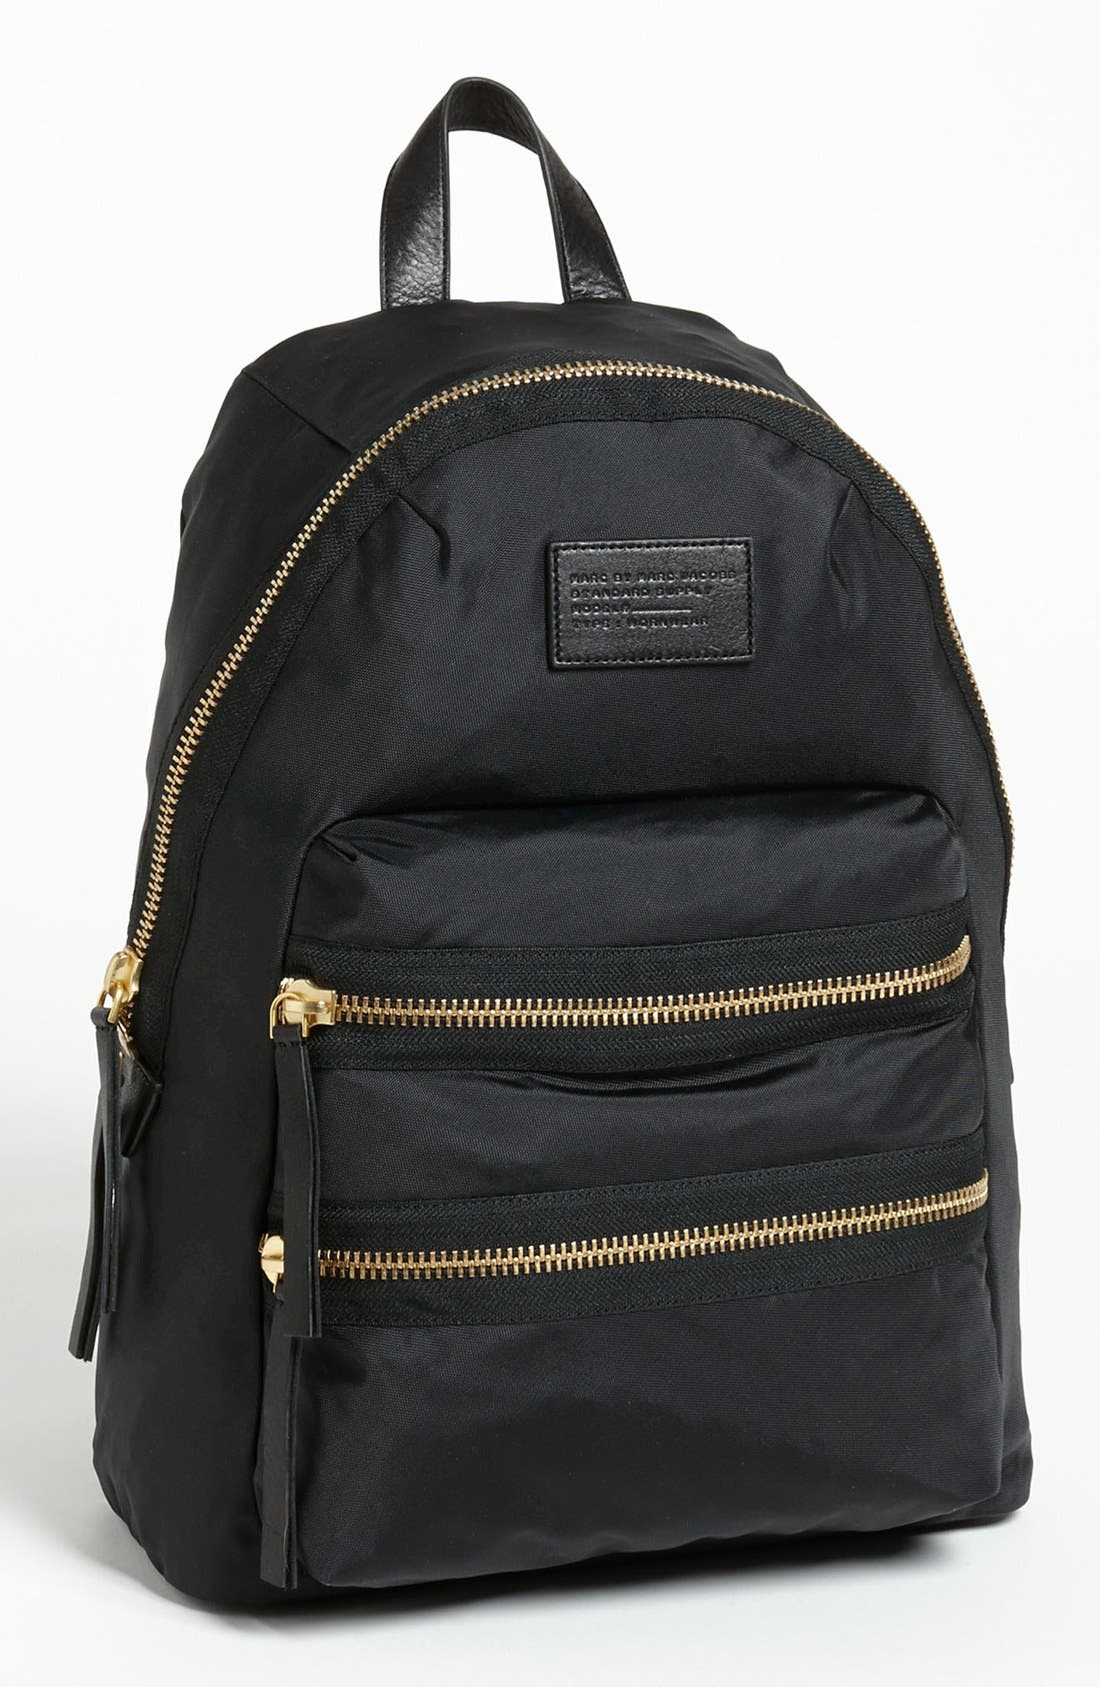 MARC BY MARC JACOBS 'Domo Arigato Packrat' Backpack,                         Main,                         color, 001